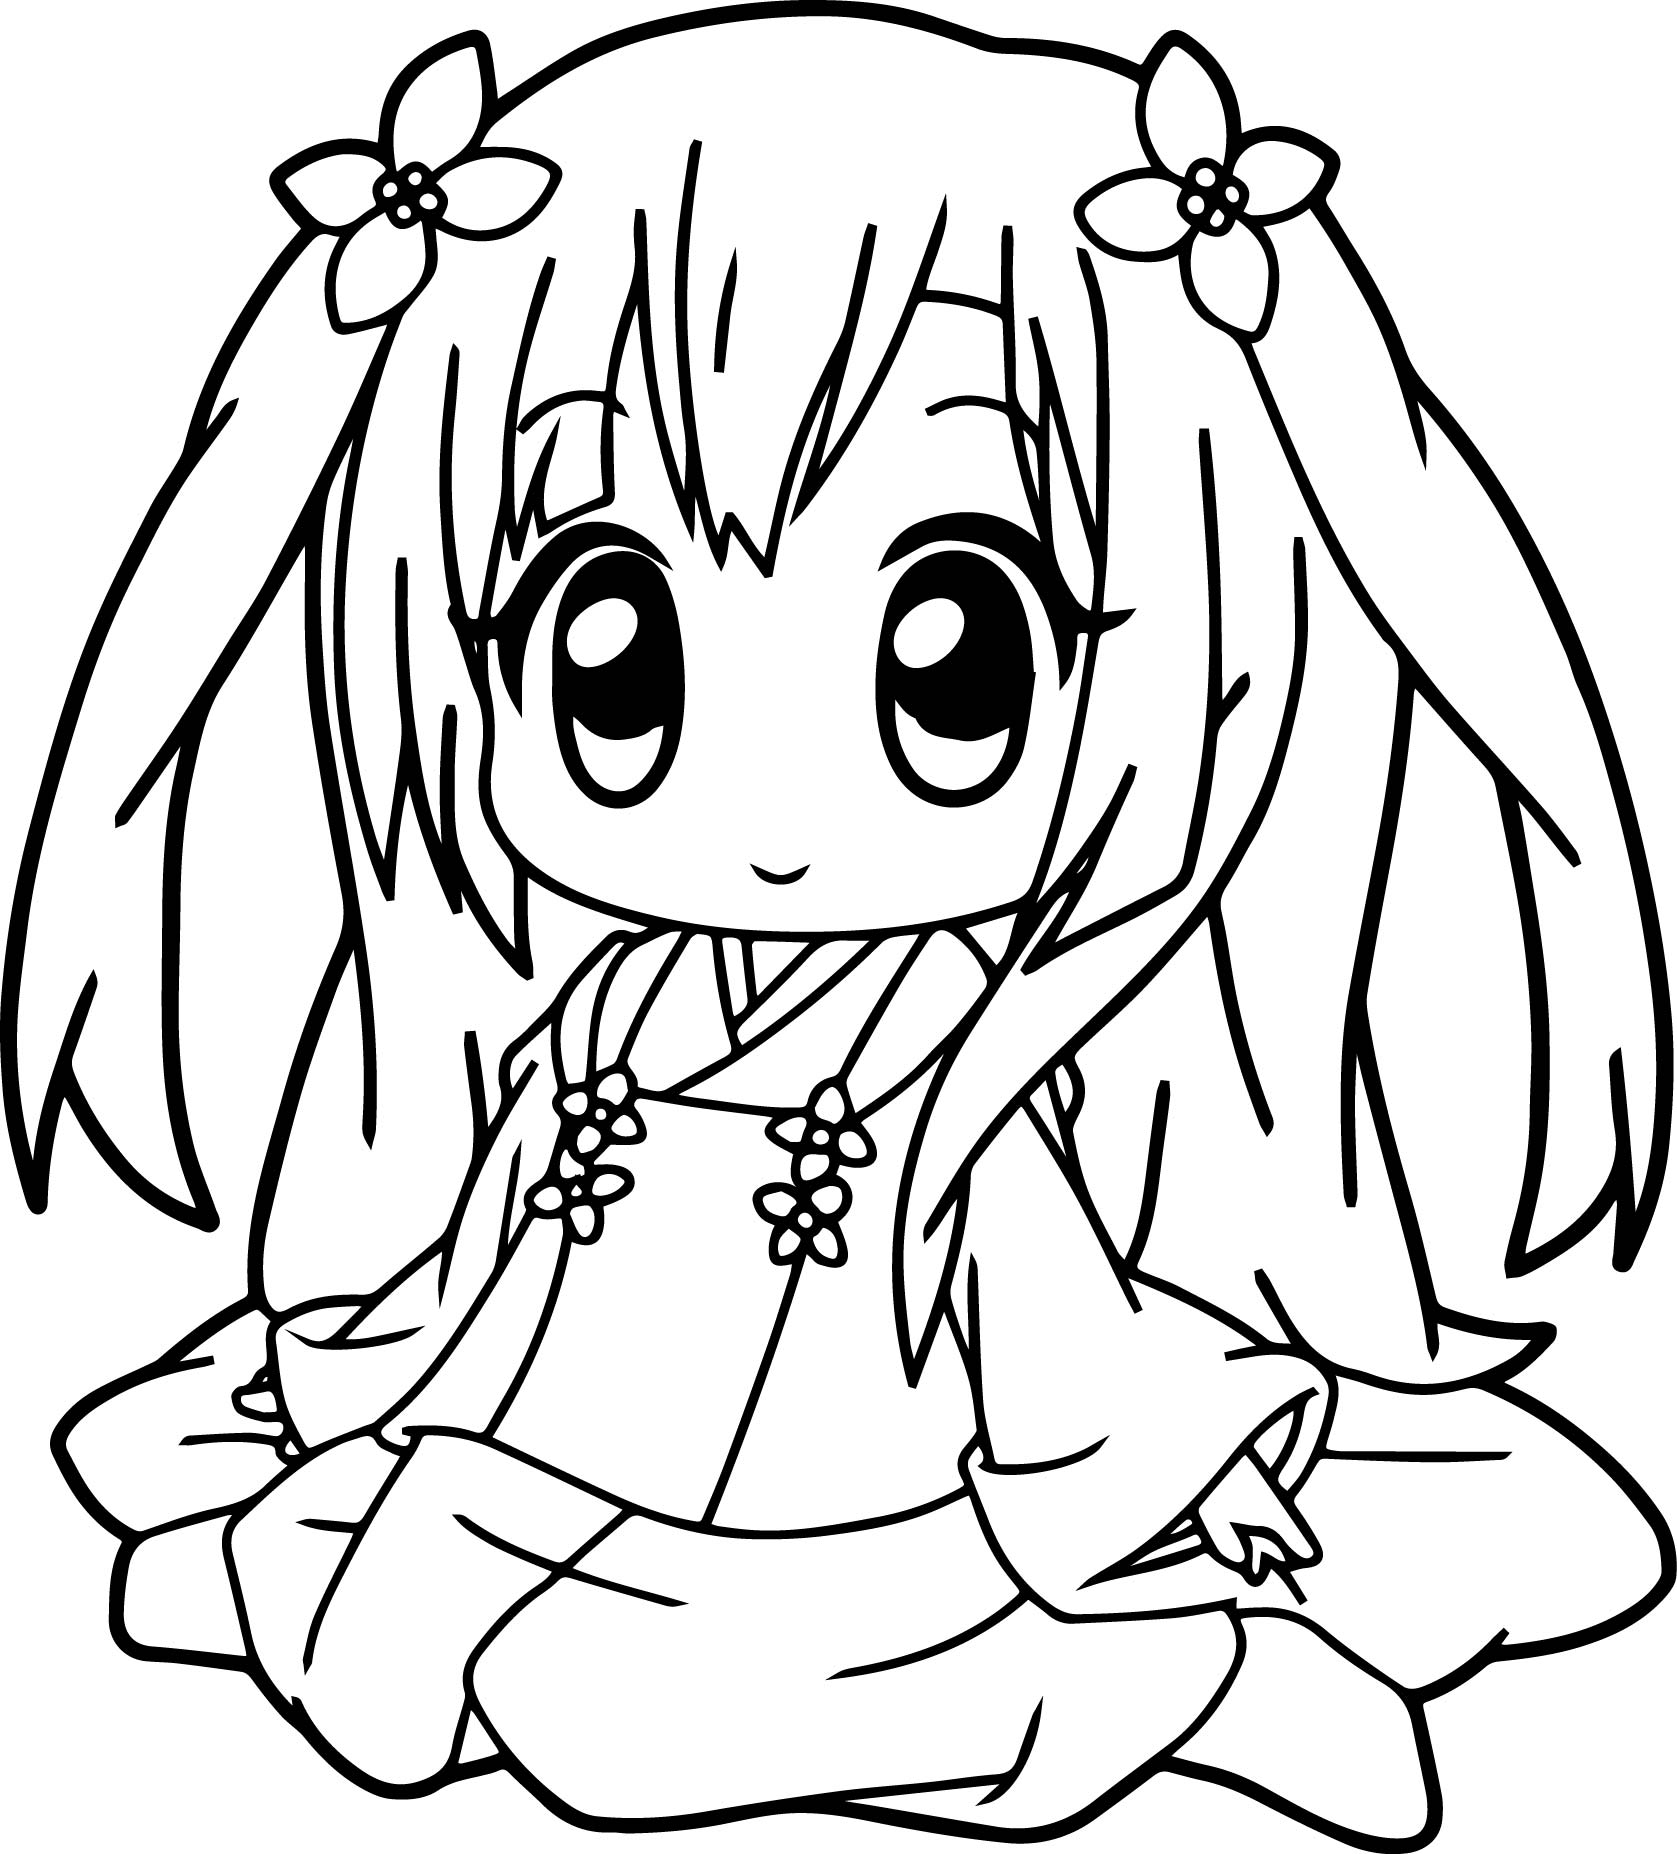 1677x1854 Very Cute Anime Girl Coloring Page Pages